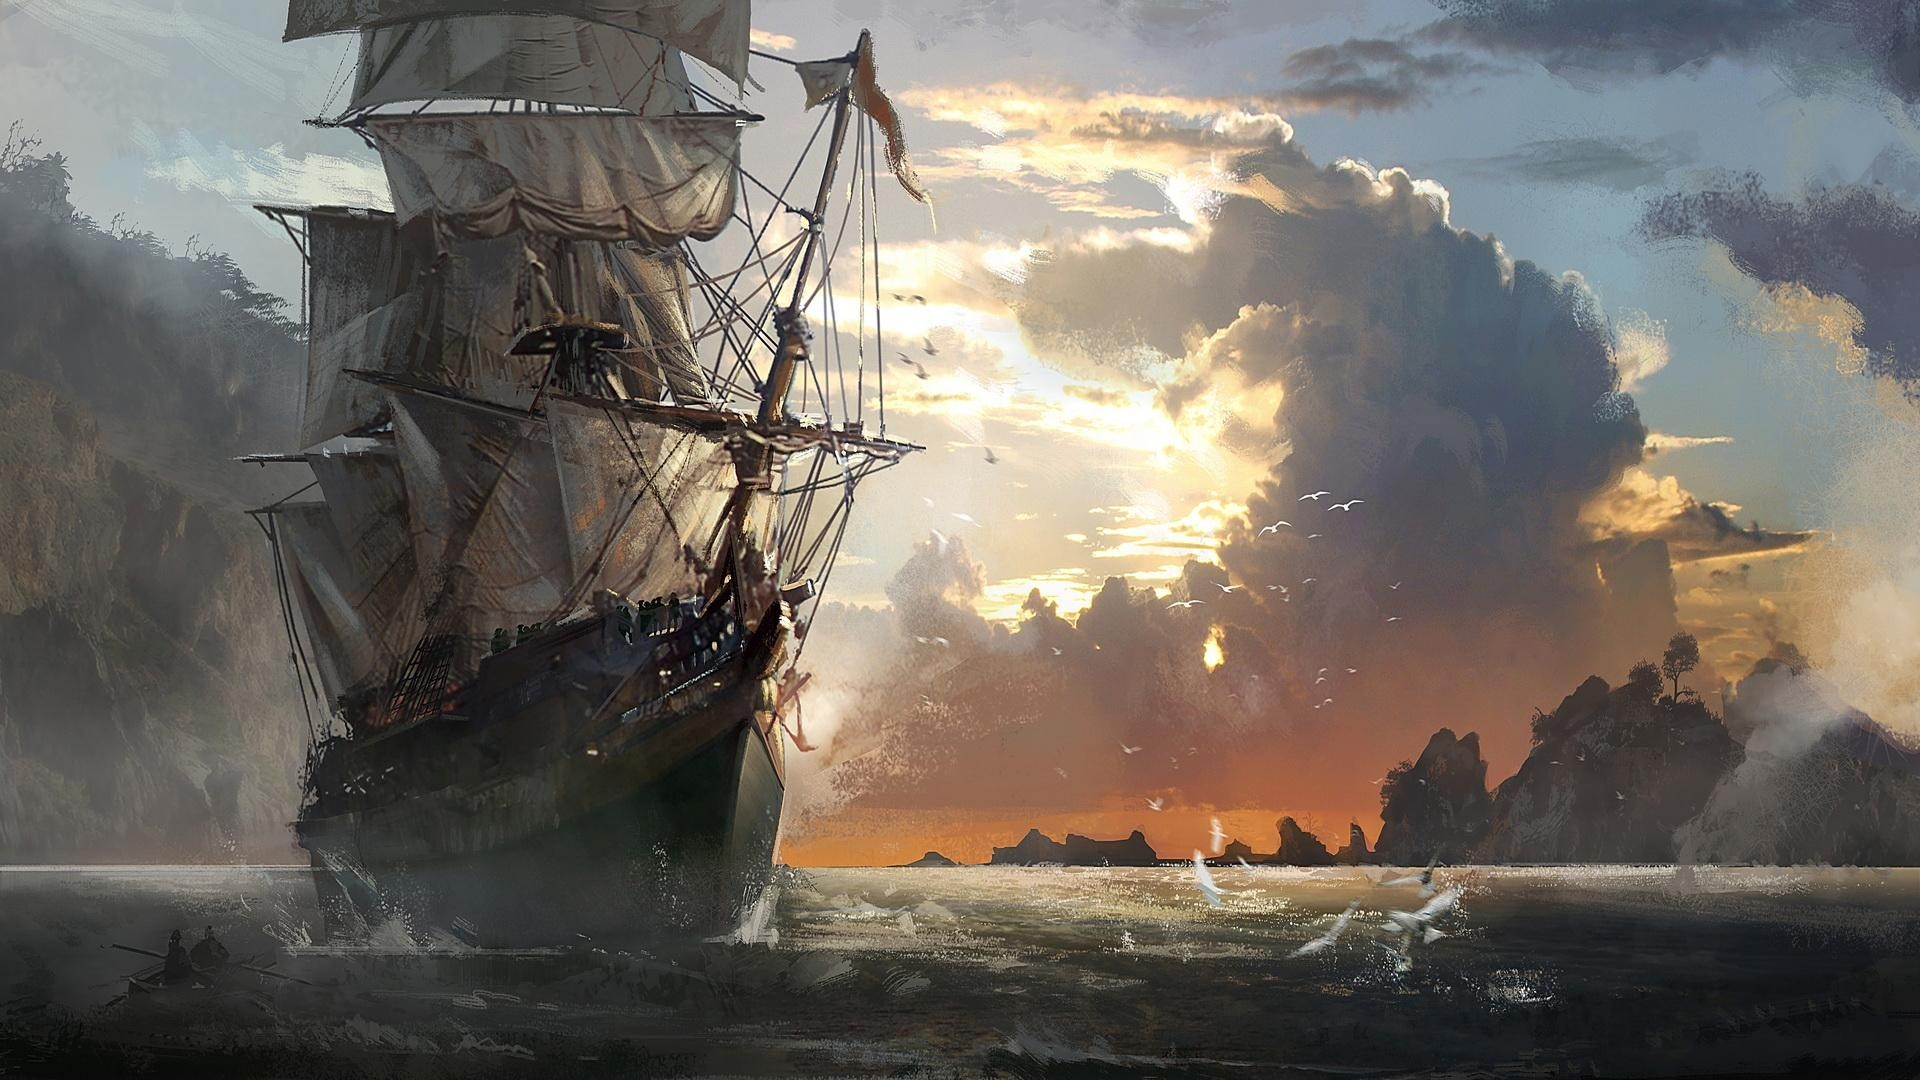 Pirate Desktop Wallpaper